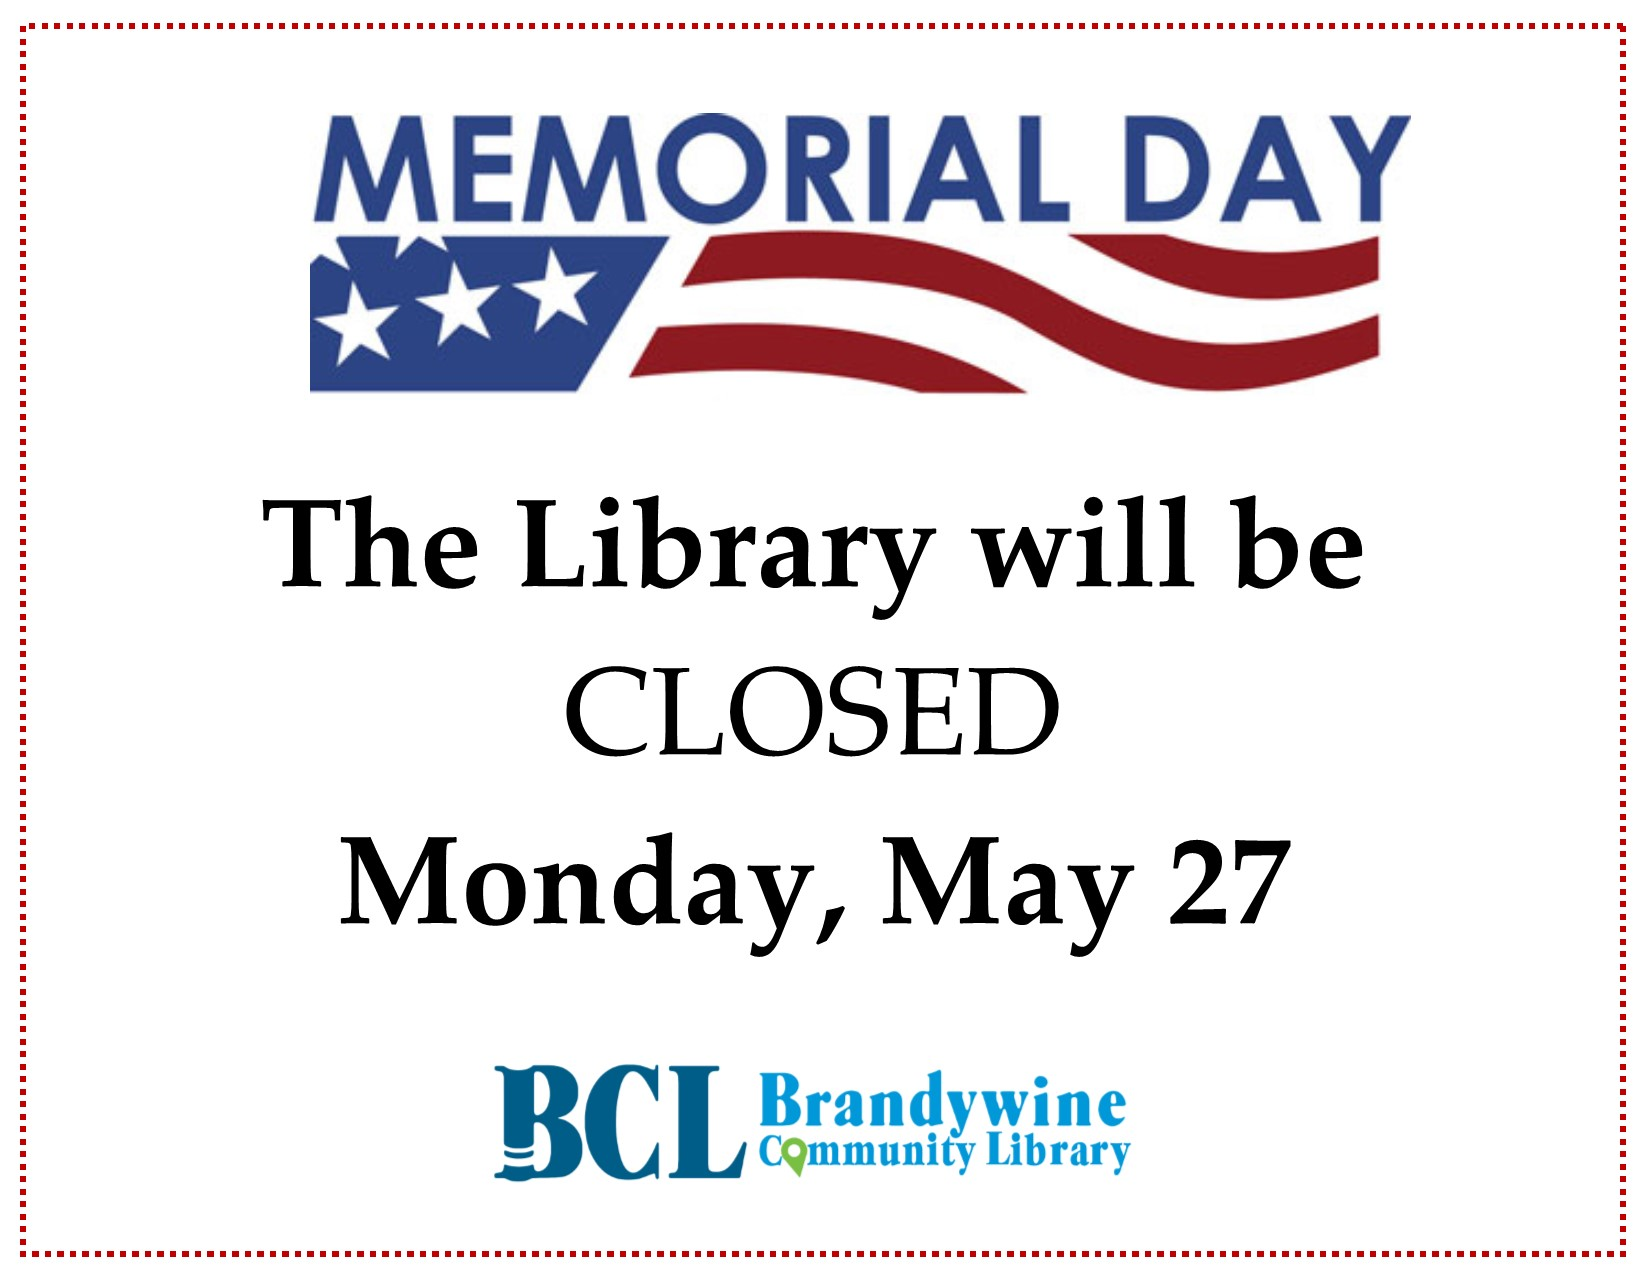 The library will be closed on Monday, May 27th